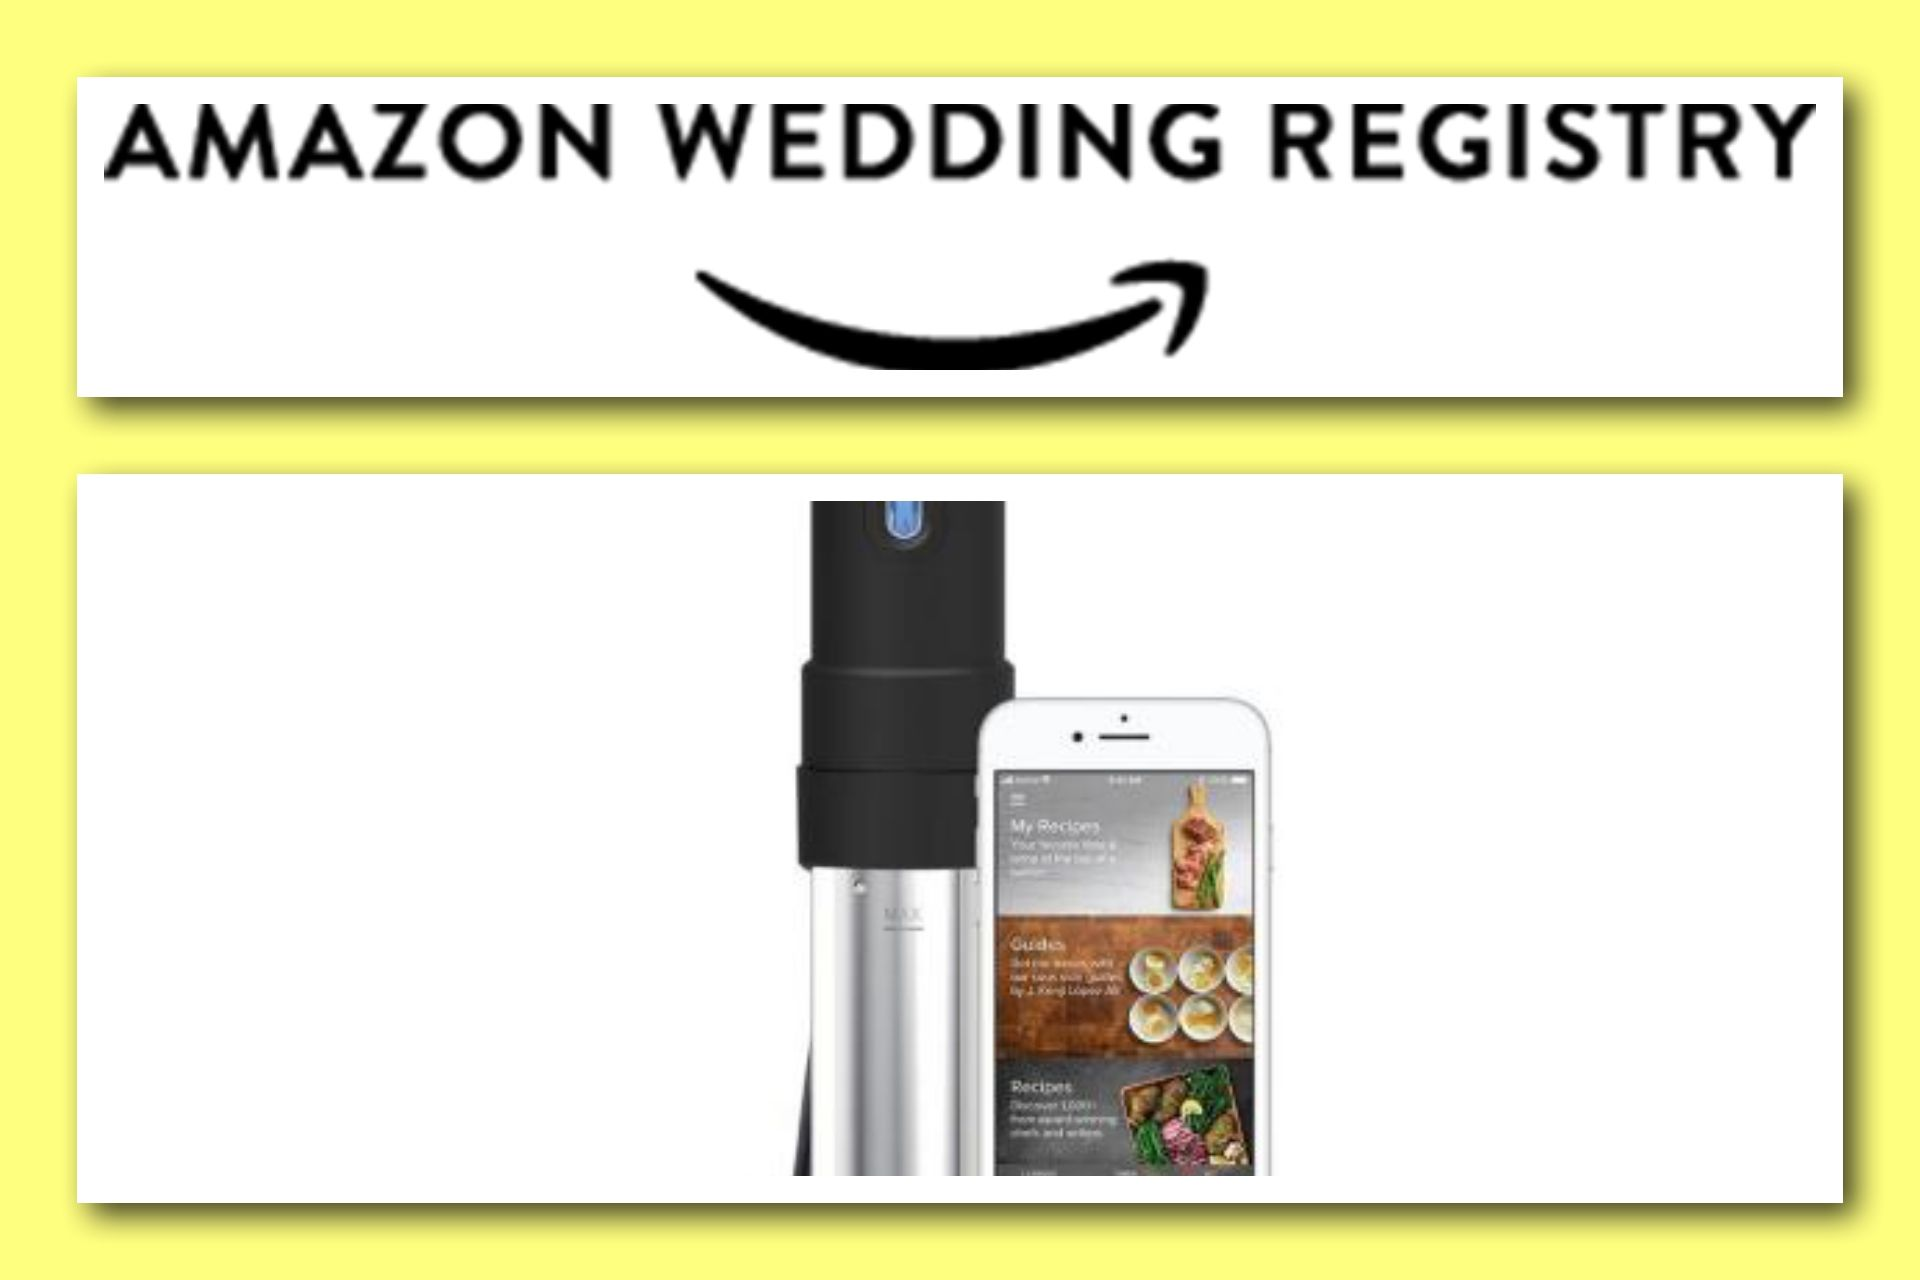 Amazon Wedding Registry Details In 2020 Amazon Wedding Registry Wedding Registry Registry